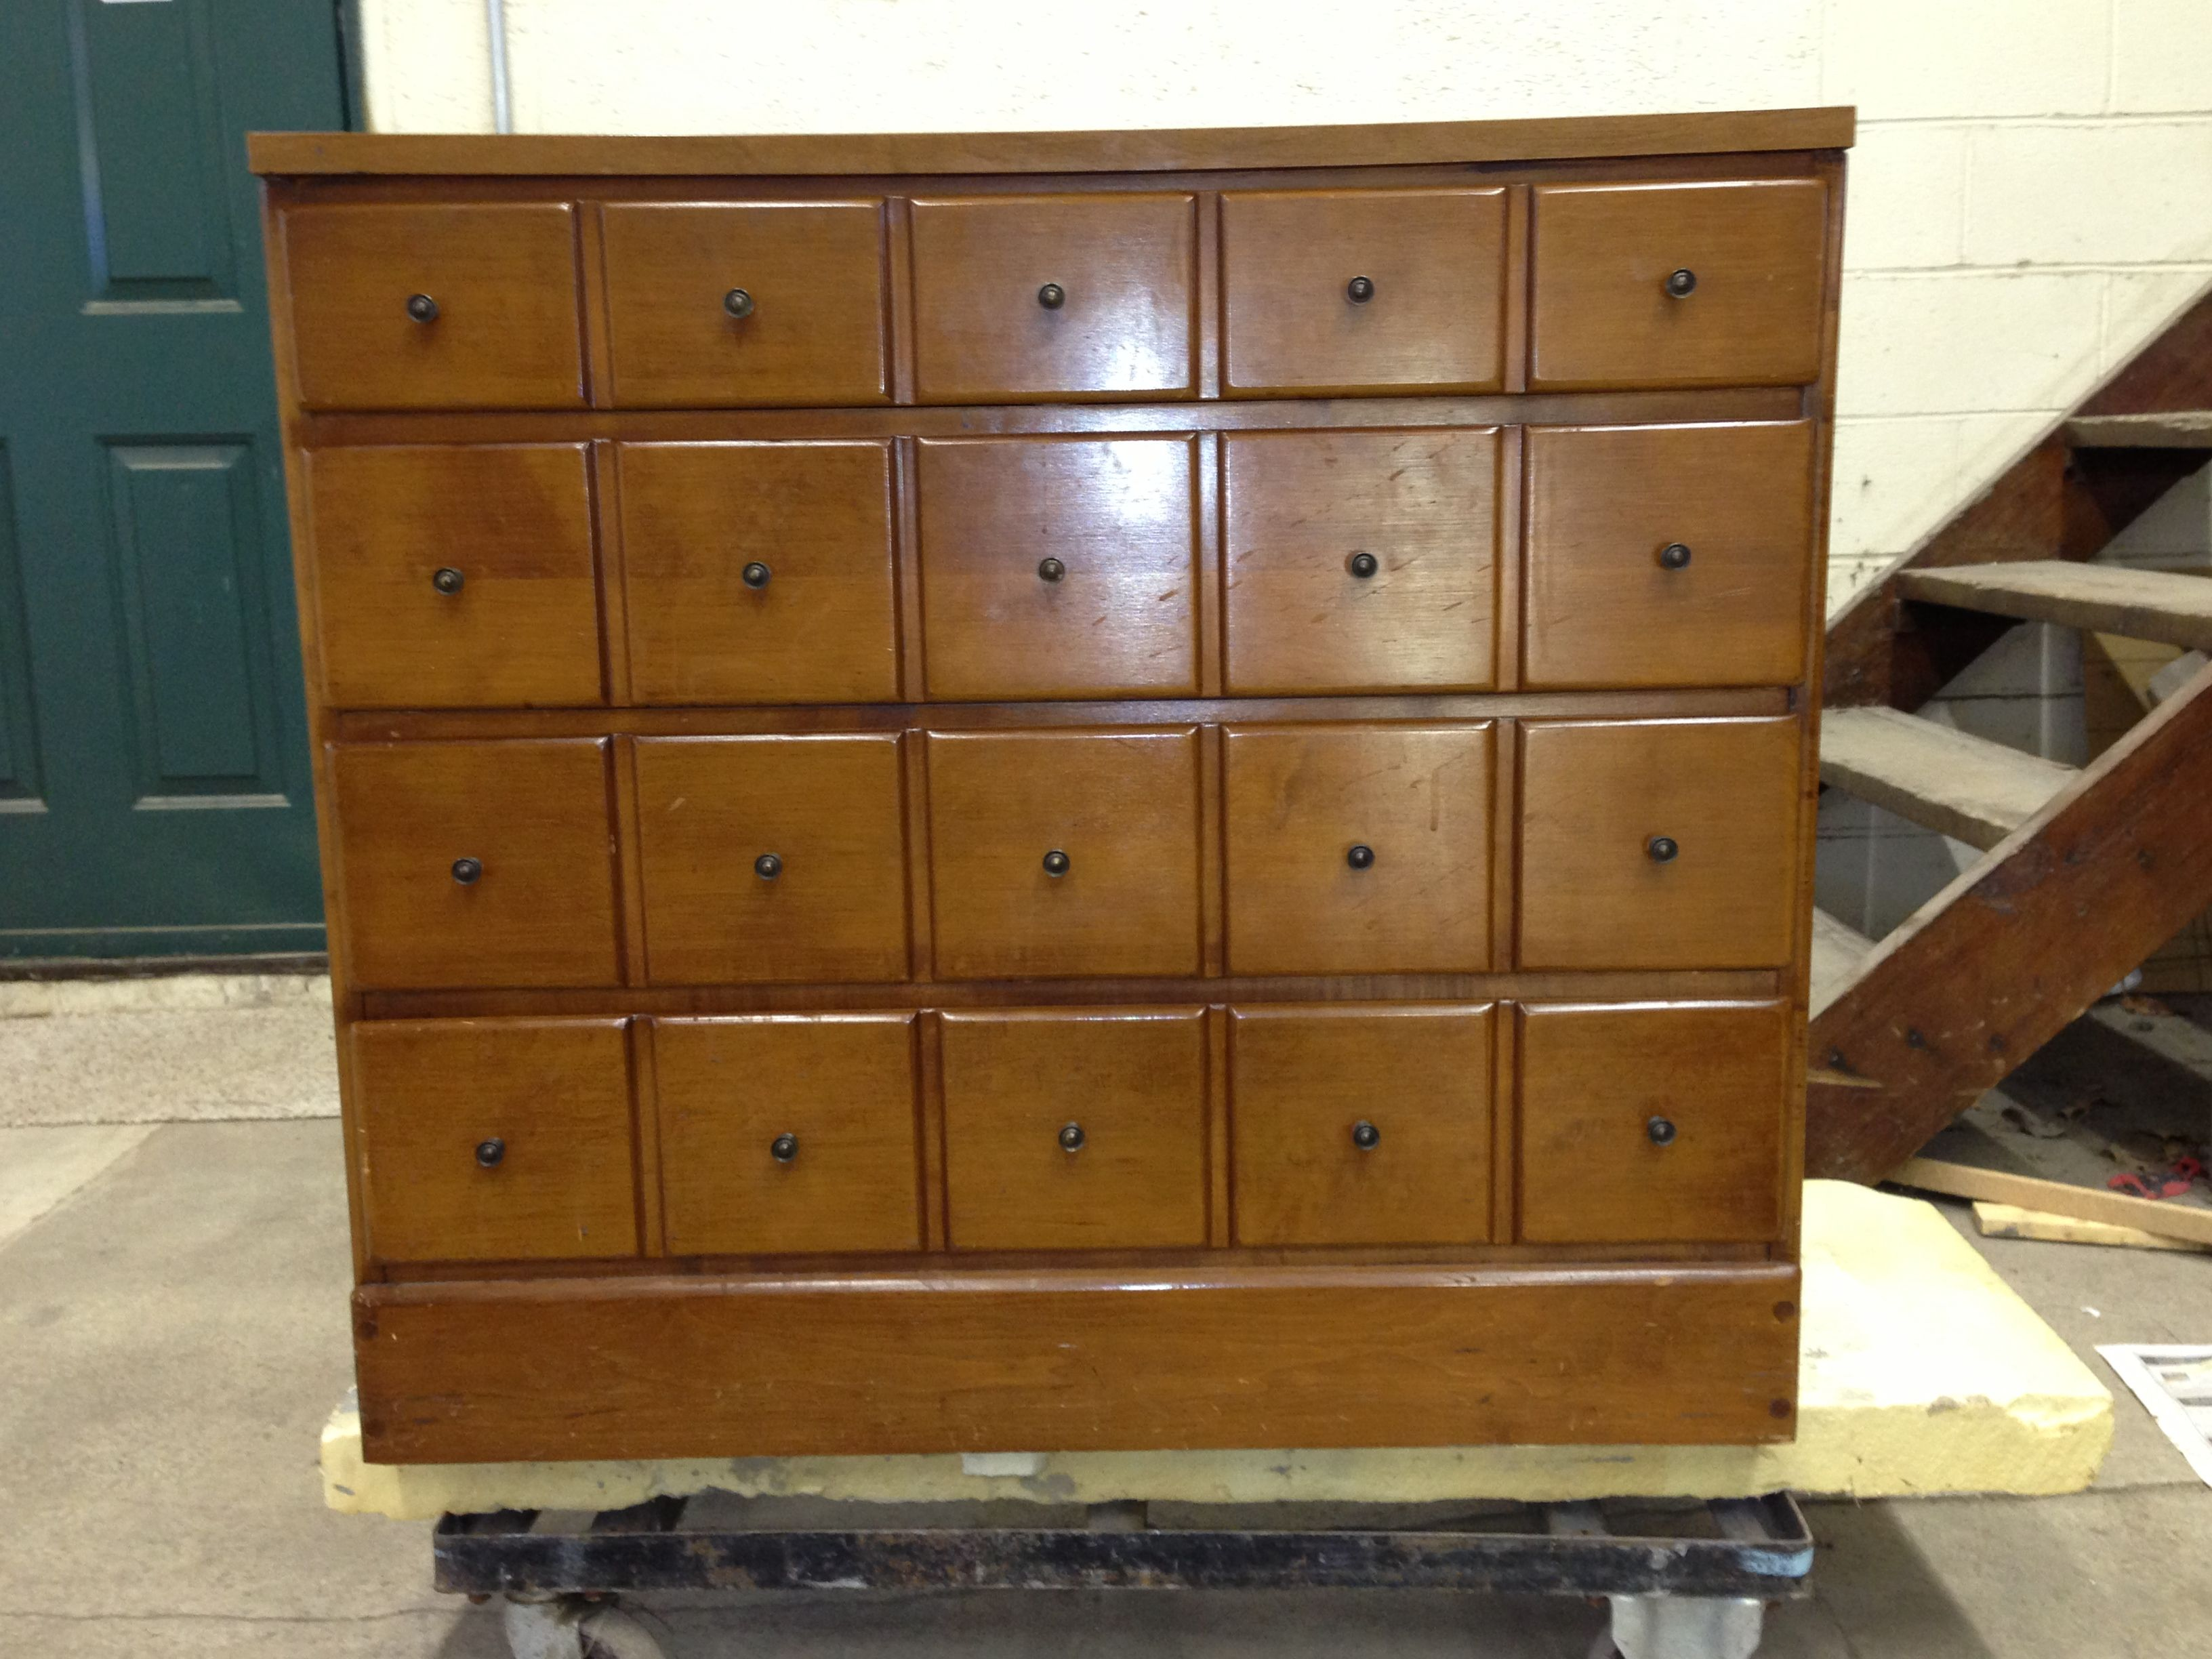 1950u0027s Maple 5 Drawer Cabinet Donu0027t They Look Like Little Spice Drawers?